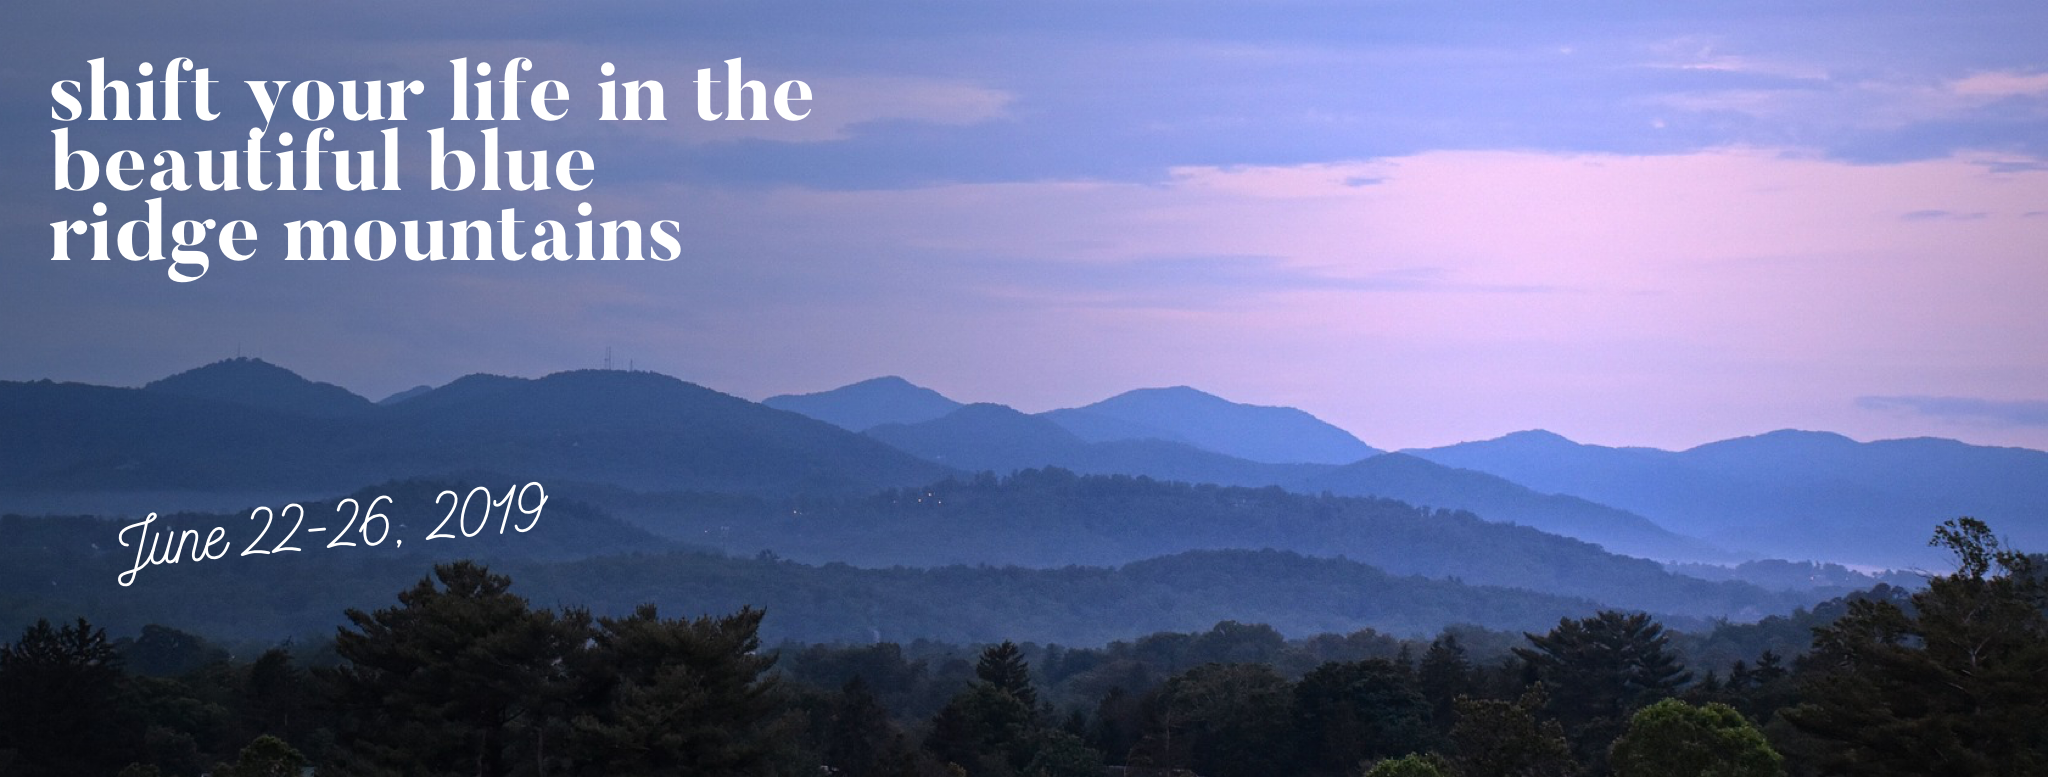 shift your life in blue ridge mountains art of living center June 2019